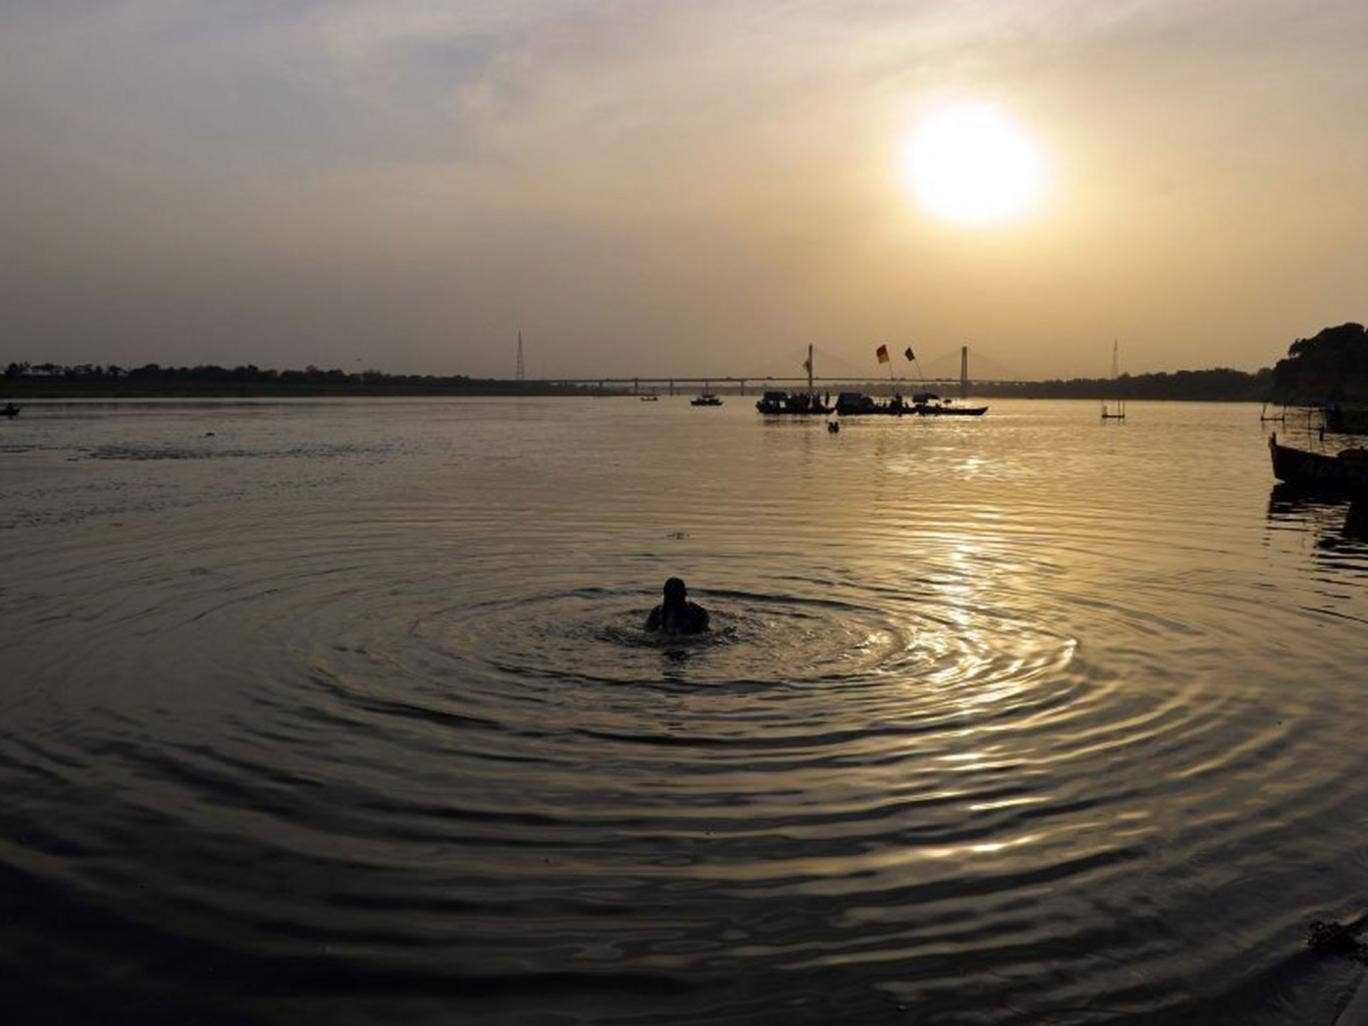 The confluence of the Ganges, Yamuna and mythical Saraswati in Allahabad